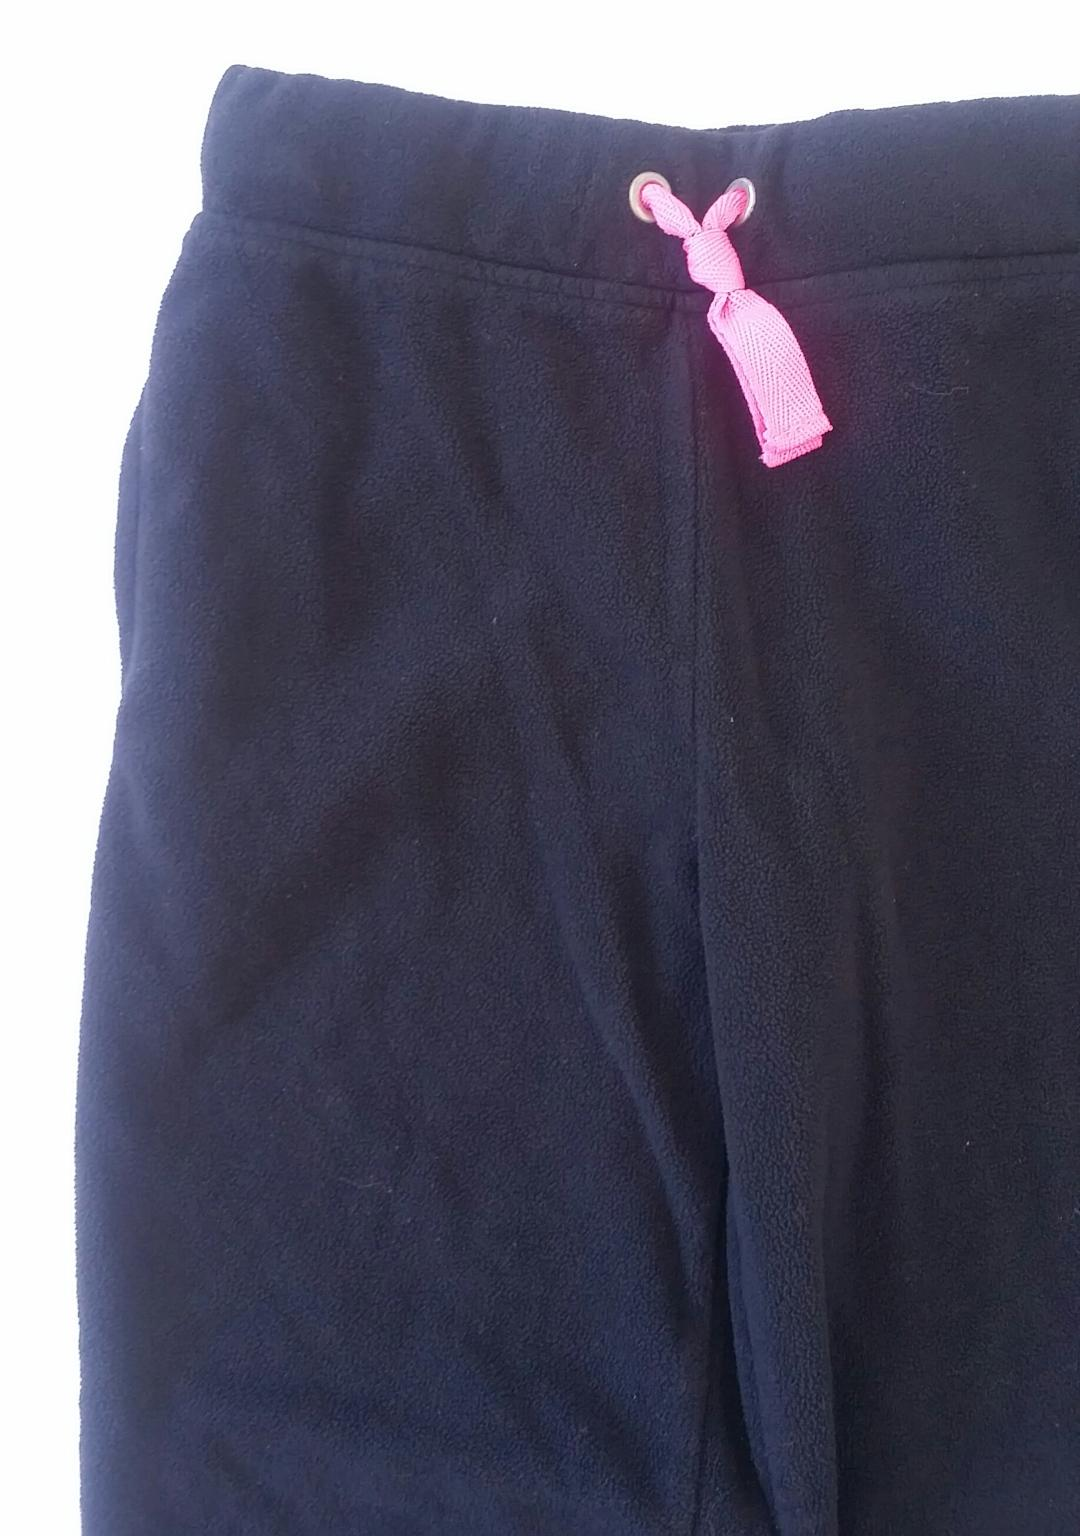 Carters-6-YEARS-Pants_2138880B.jpg